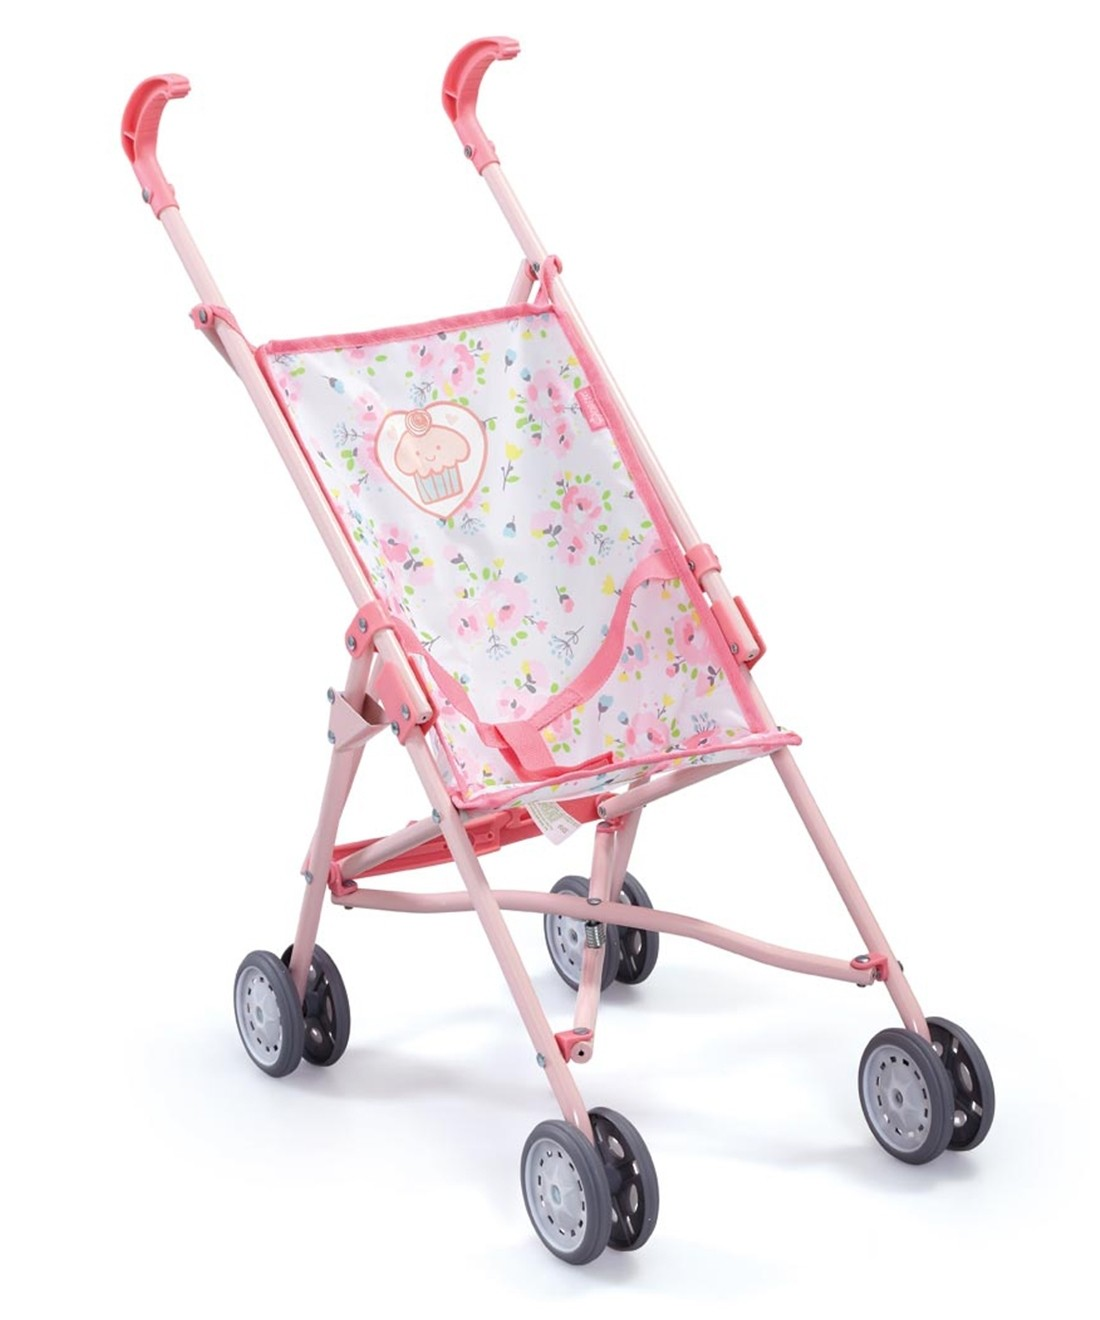 Early Learning Centre Cupcake Dolly Stroller - Pink